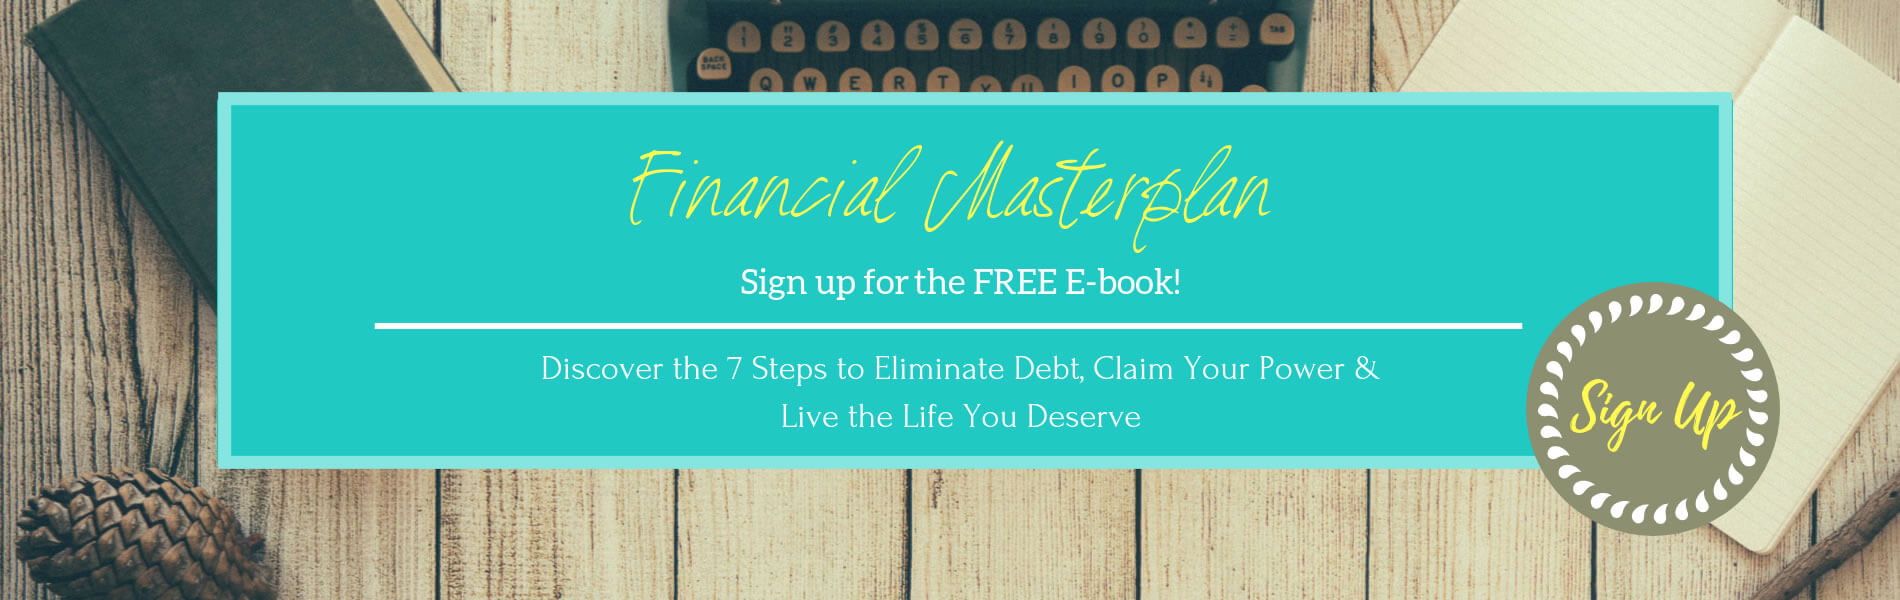 Financial Masterplan Free Ebook